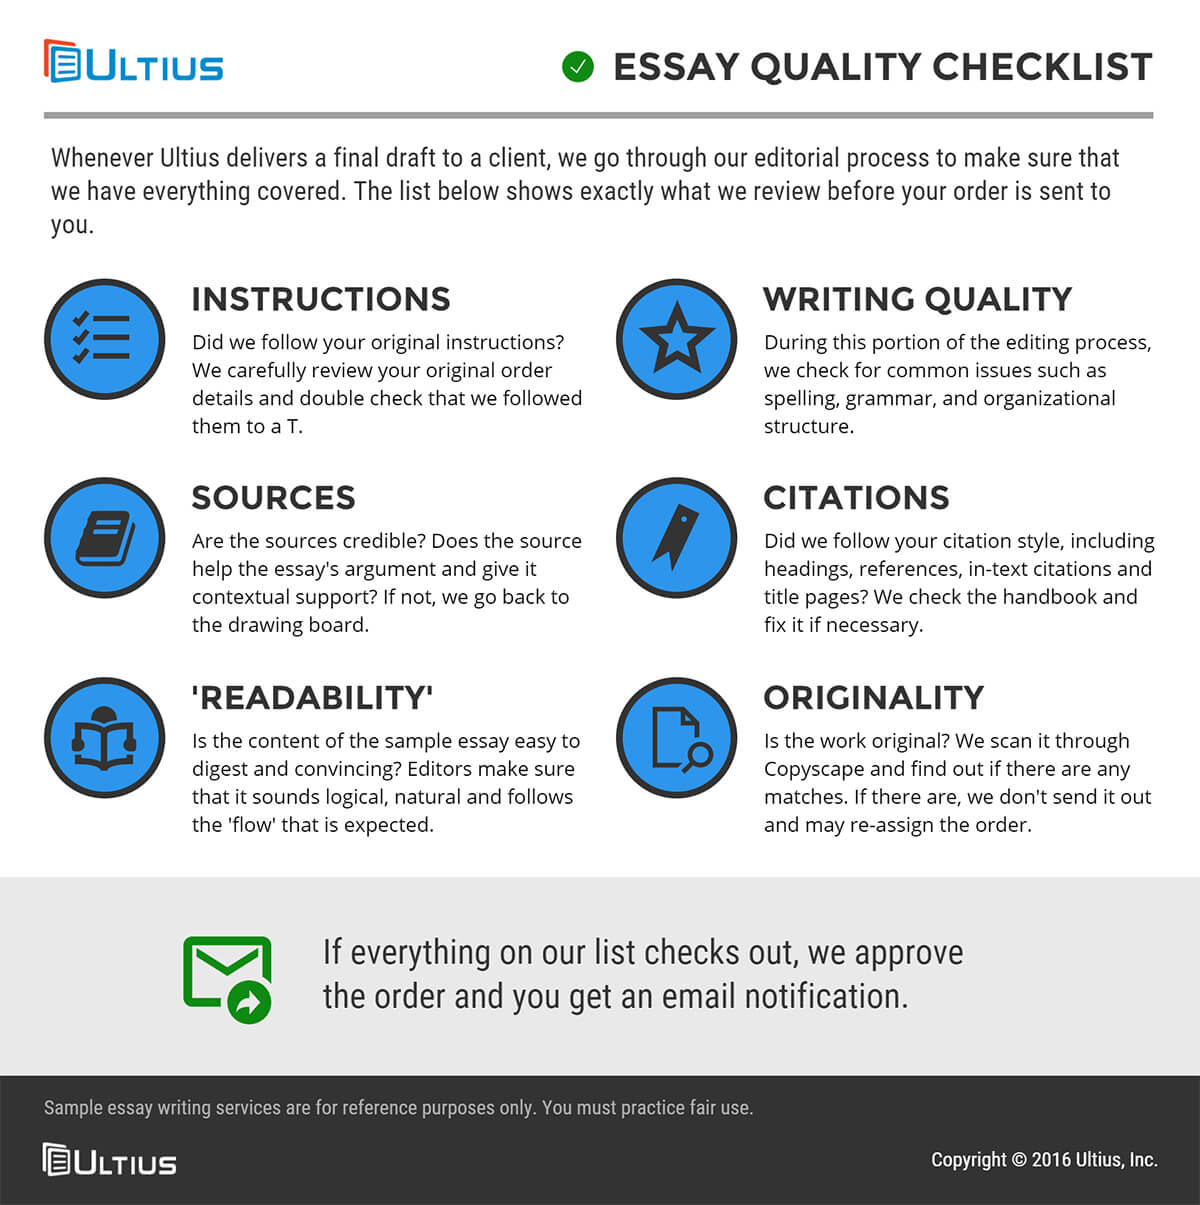 Essays online that you can purchase